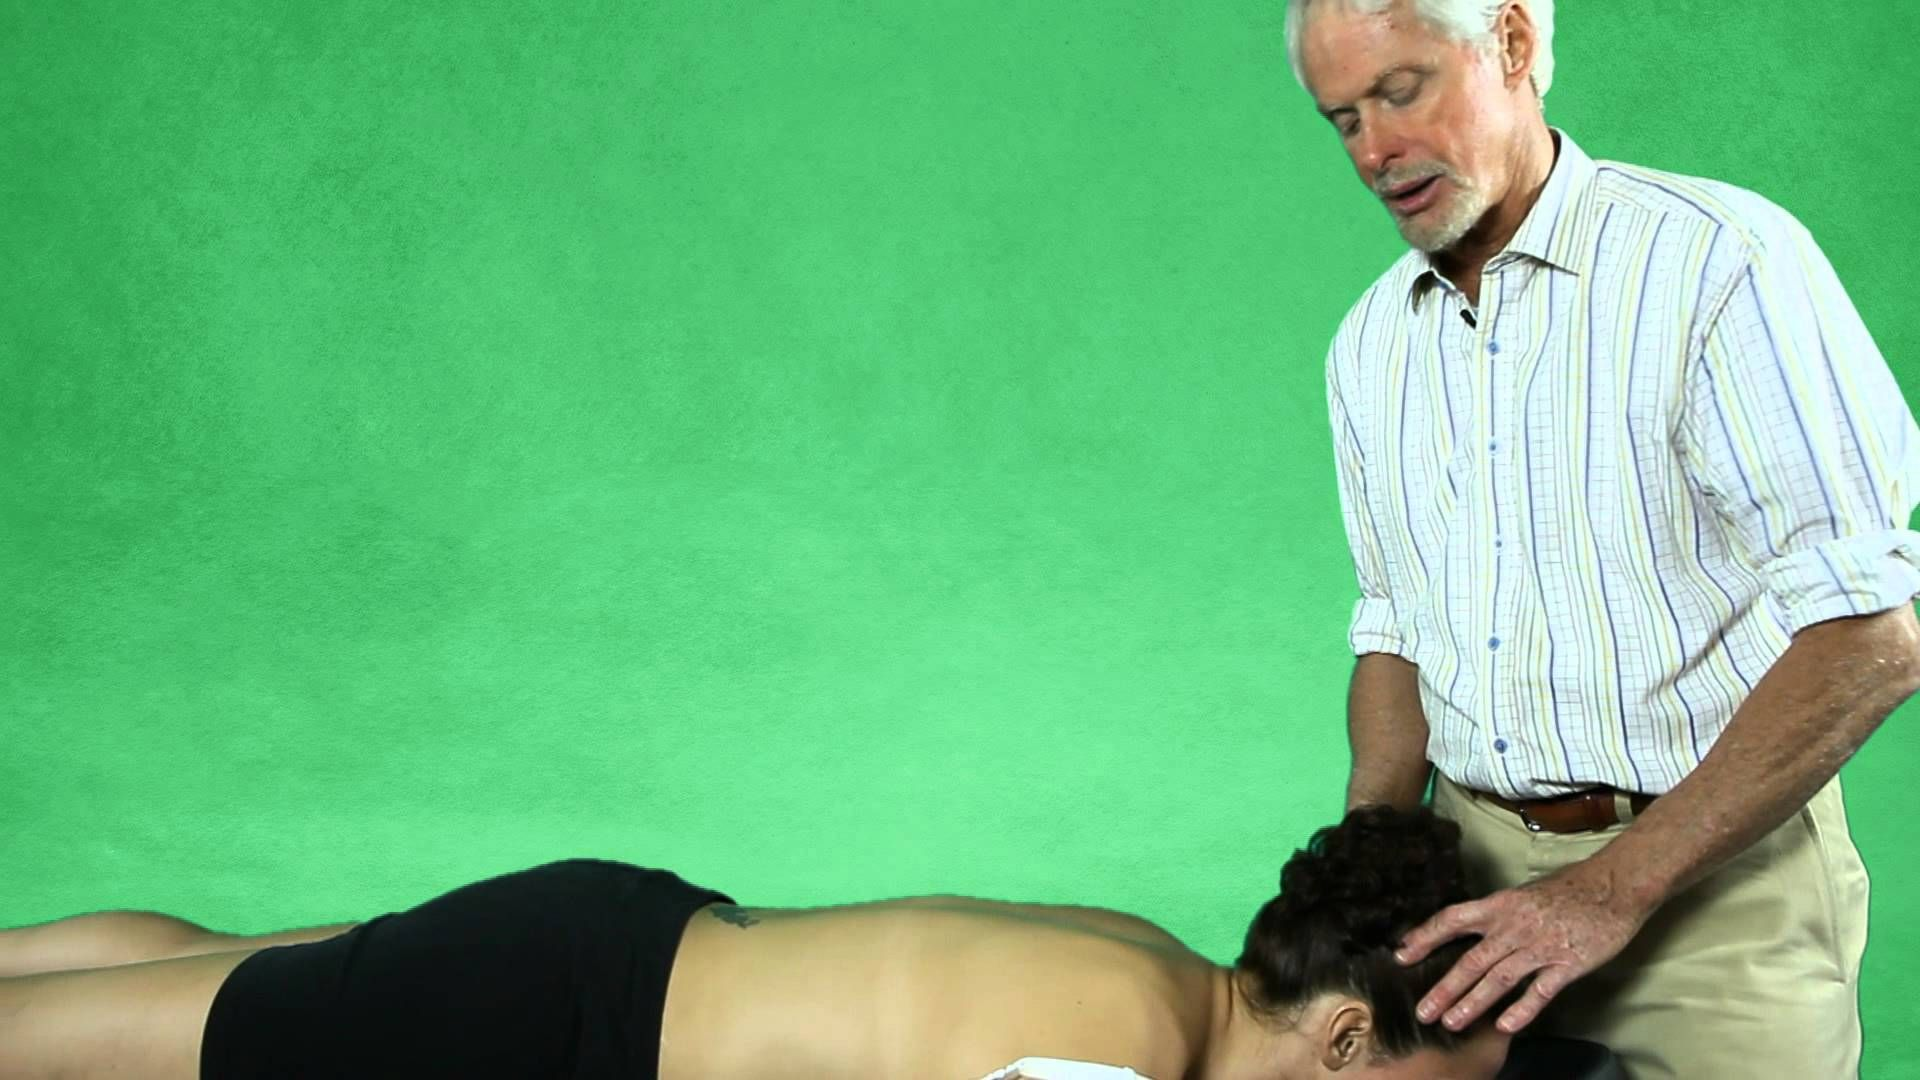 Learn the secrets of humps massage